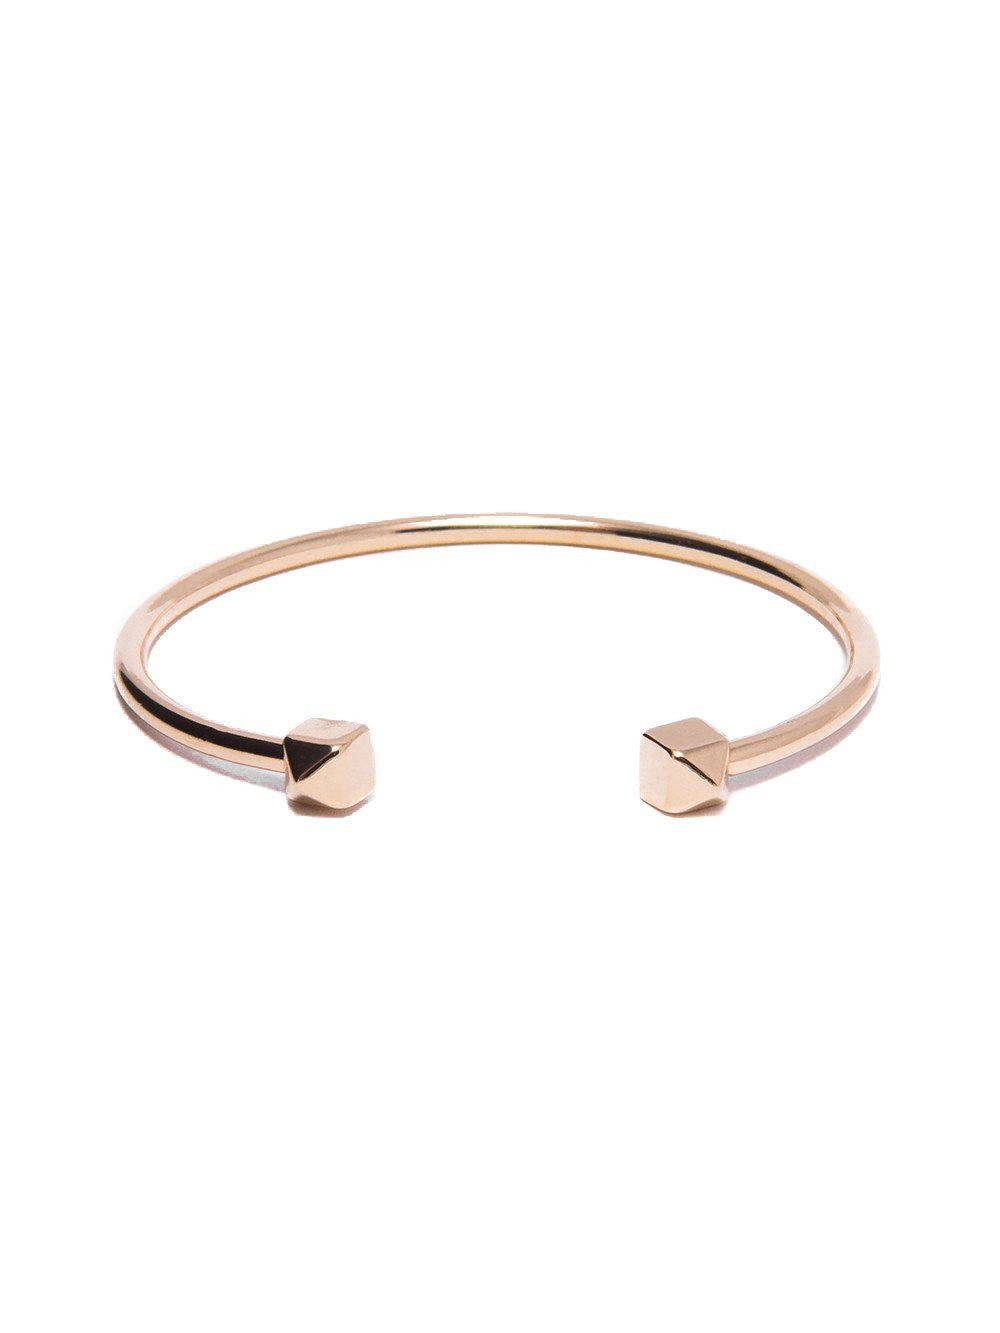 Reckless Girls Womens - Jewelry - Bracelet Gold Pyramid - Tipped Bangle